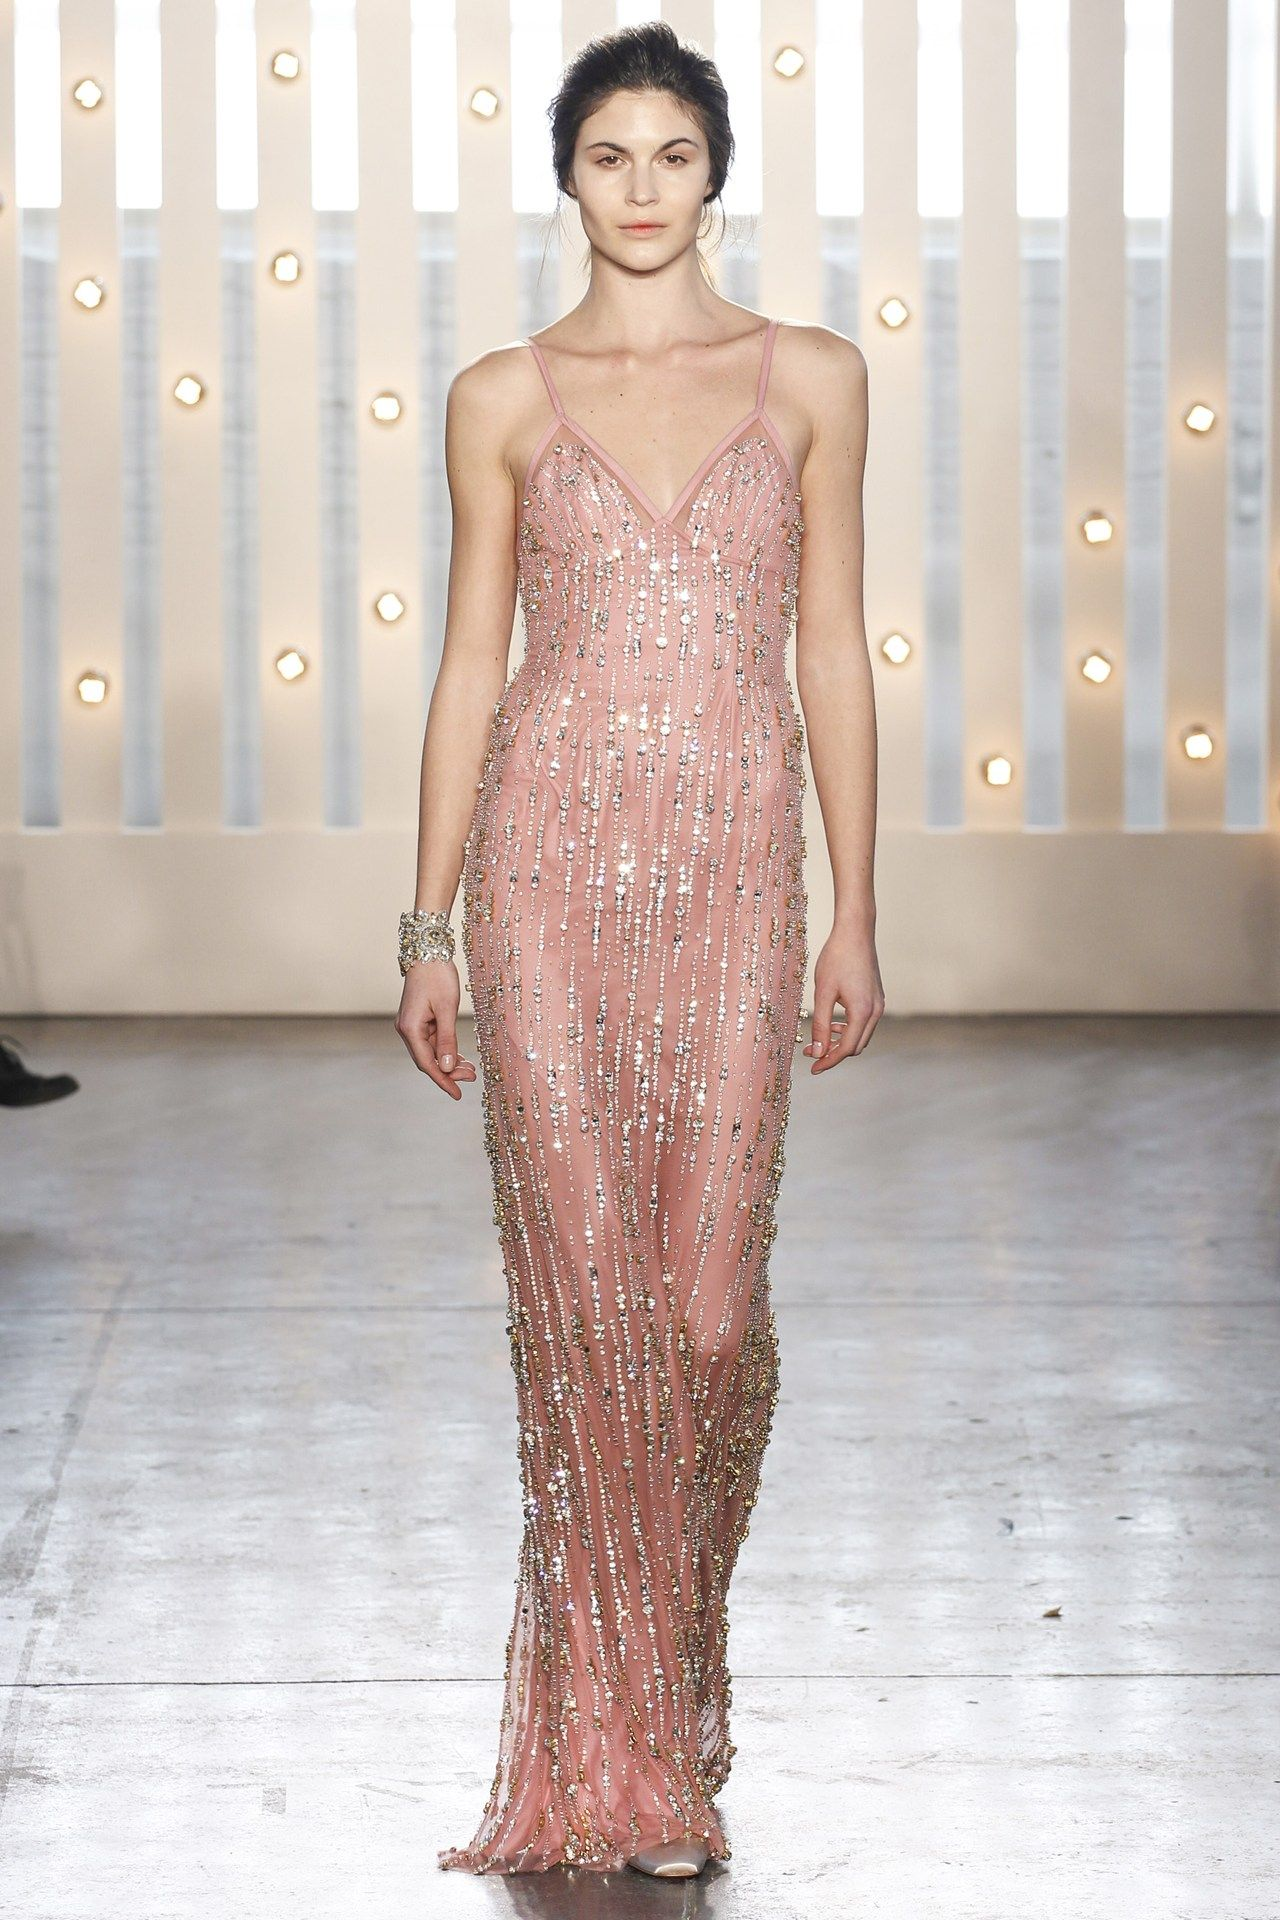 Jenny Packham Autumn/Winter 2014 Ready-To-Wear | Alta costura ...